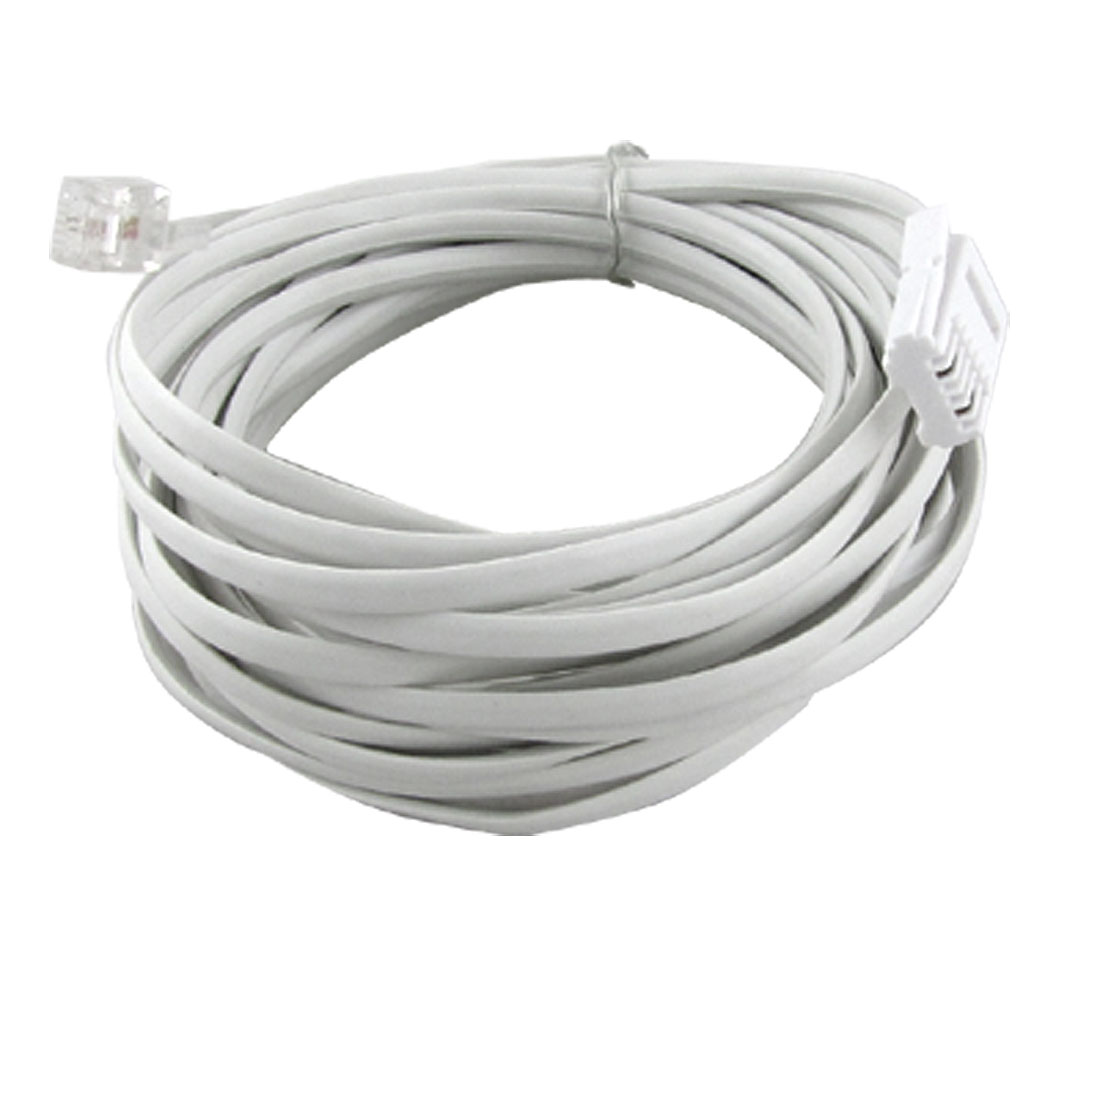 Fax Modem Telephone Extension Cable White 5M RJ11 to UK BT Plug